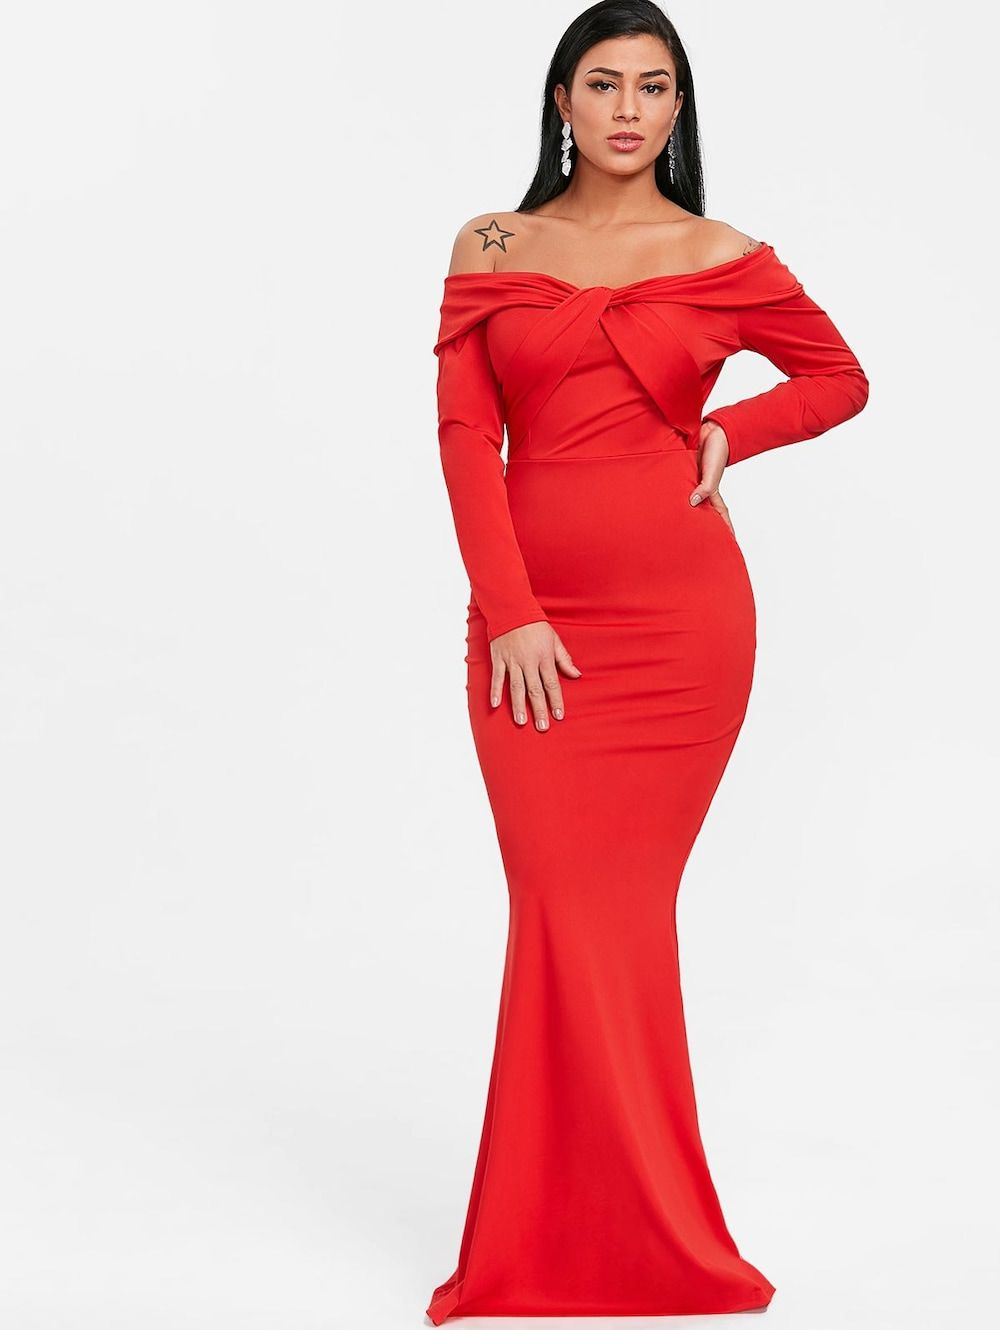 Off the shoulder twist trumpet prom dress sexy heels and